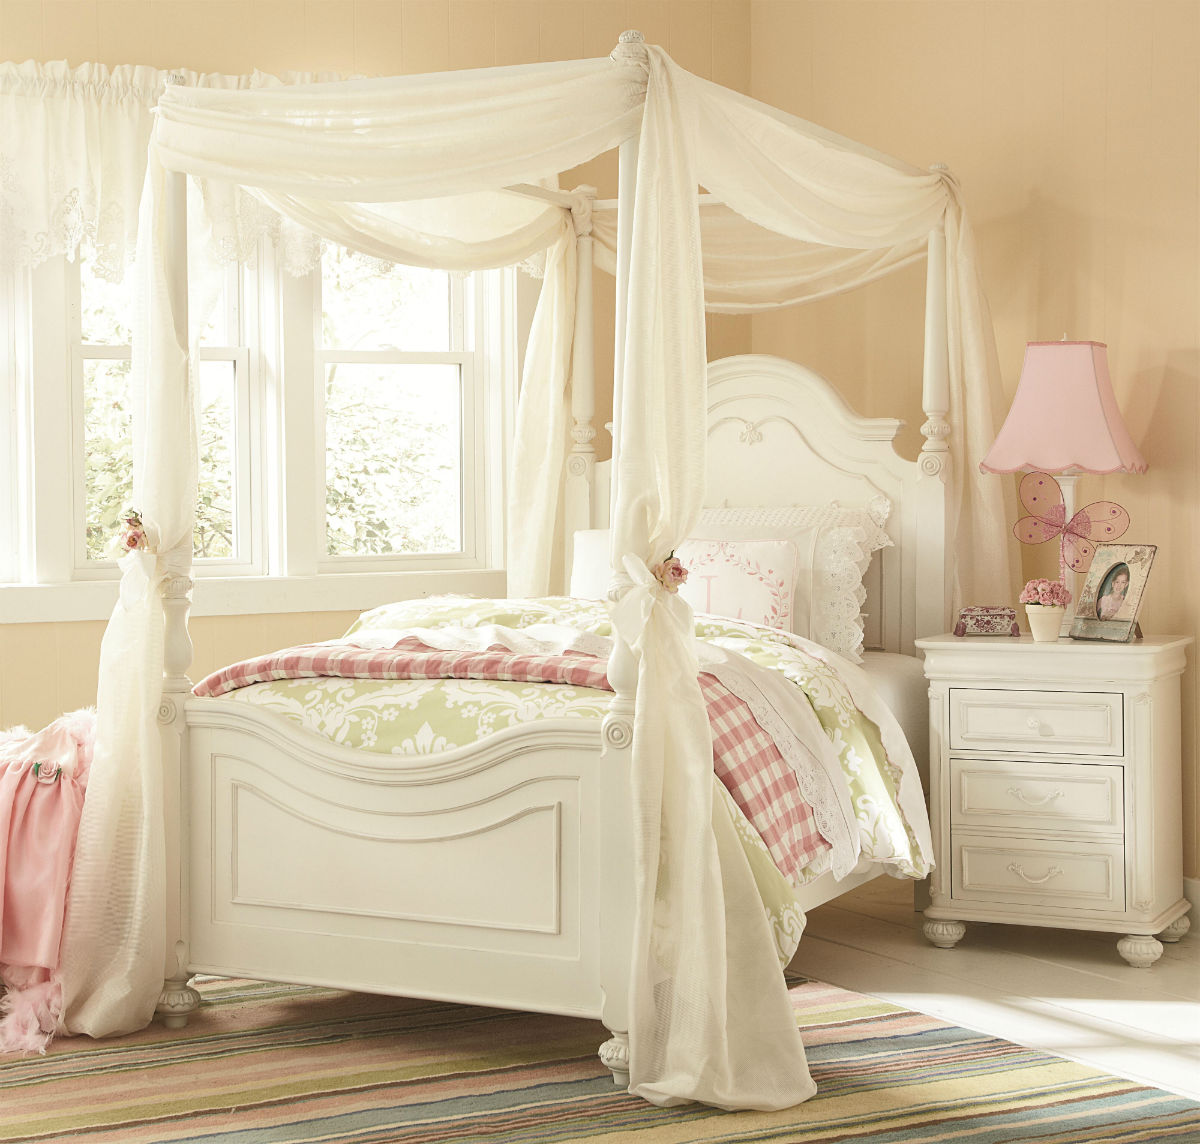 White Bedroom Sets For Girls Retro Bedroom Decor Bedroom Lighting Ideas Modern Art Deco Bedroom Suite: Legacy Classic Kids Charlotte Poster Canopy Bedroom Set In